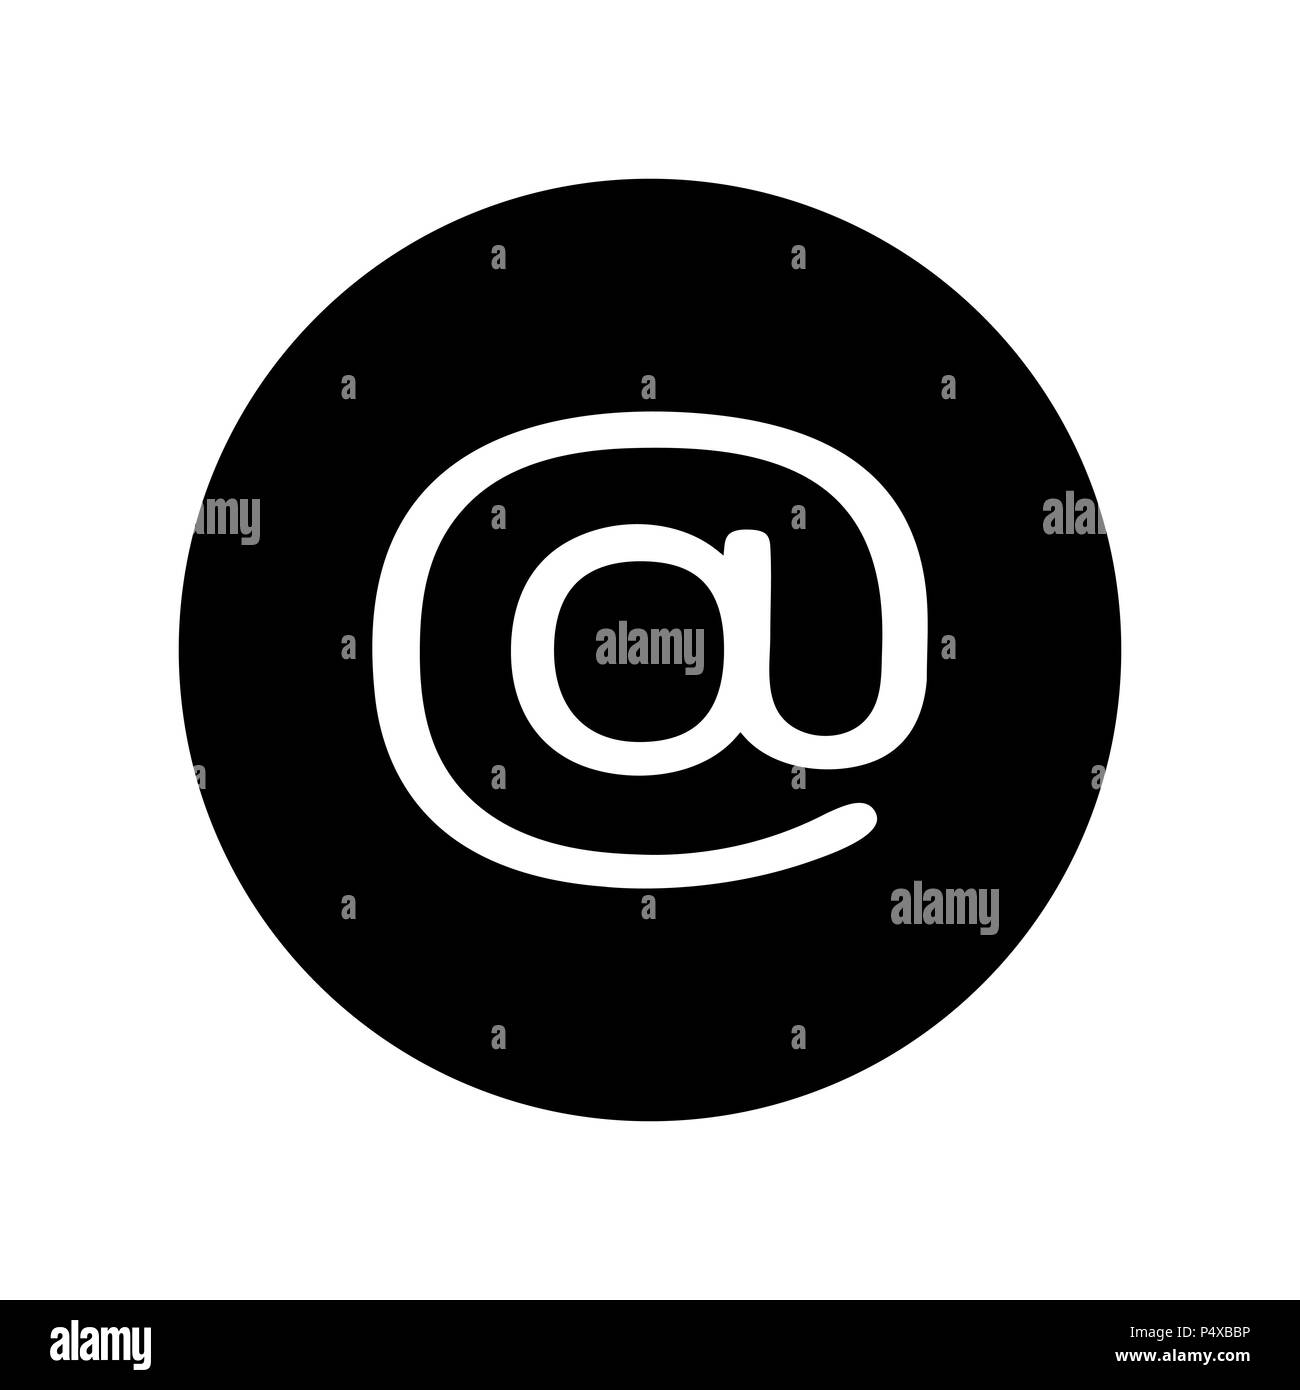 Email Icon In Black Circle E Mail Symbol Stock Vector Art